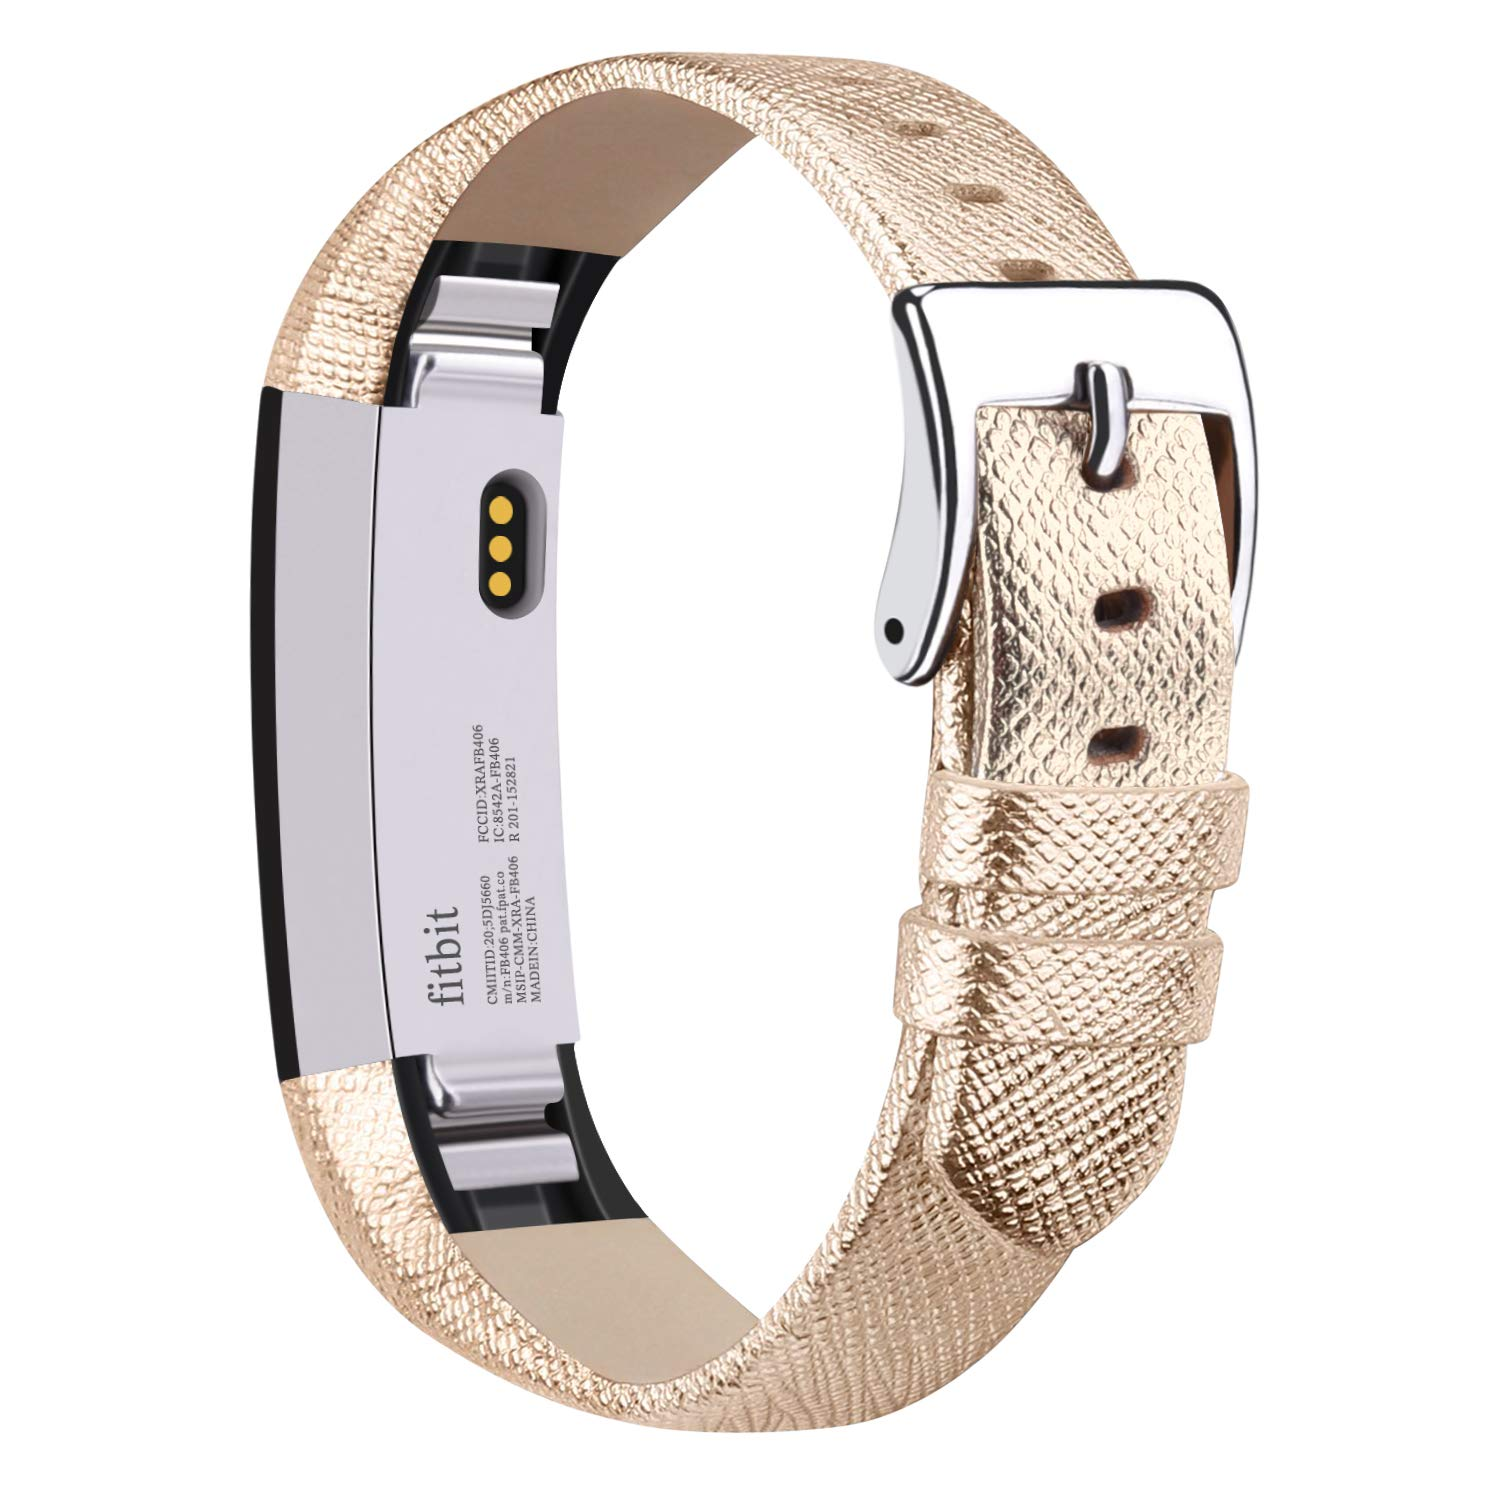 Vancle Compatible with for Fitbit Alta Bands Leather, Adjustable Replacement Accessories Fitbit Alta HR Bands for Women Men (11. Gold)